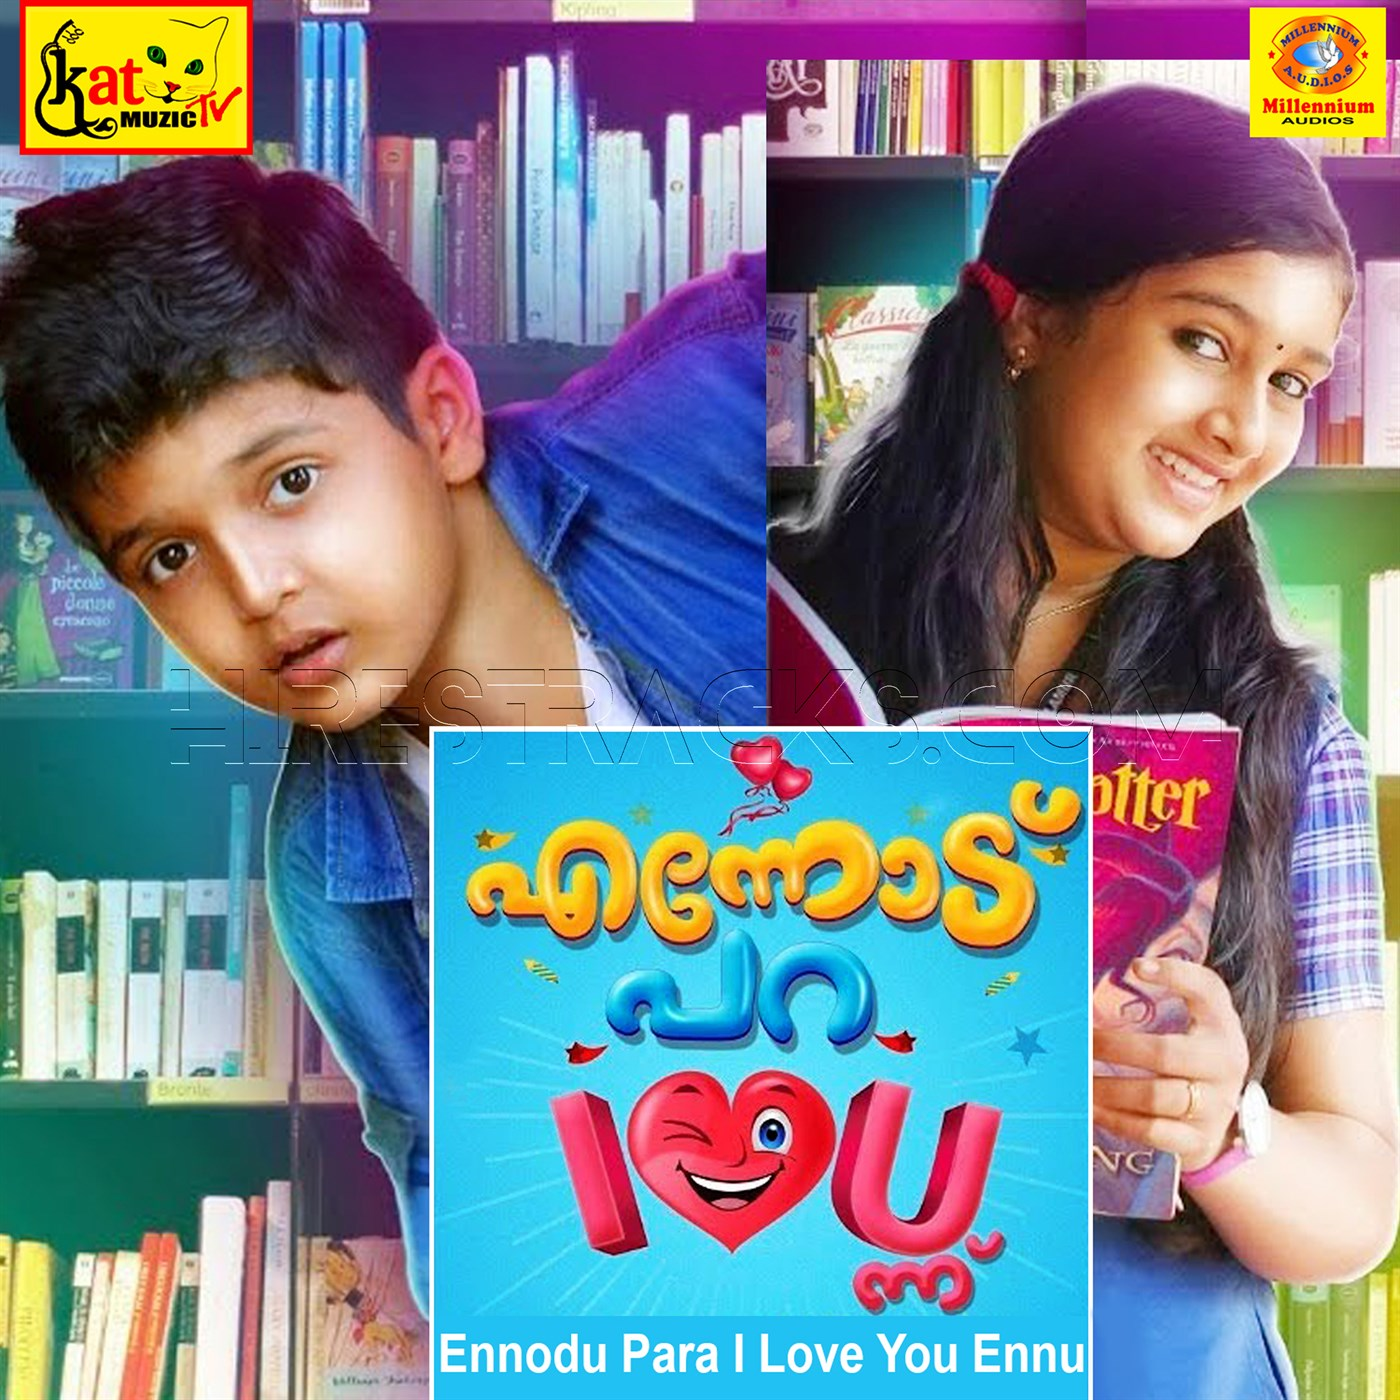 Allah Avalente Pennakane (From Ennodu Para I Love You Ennu) – Single (2019) [24 BIT]